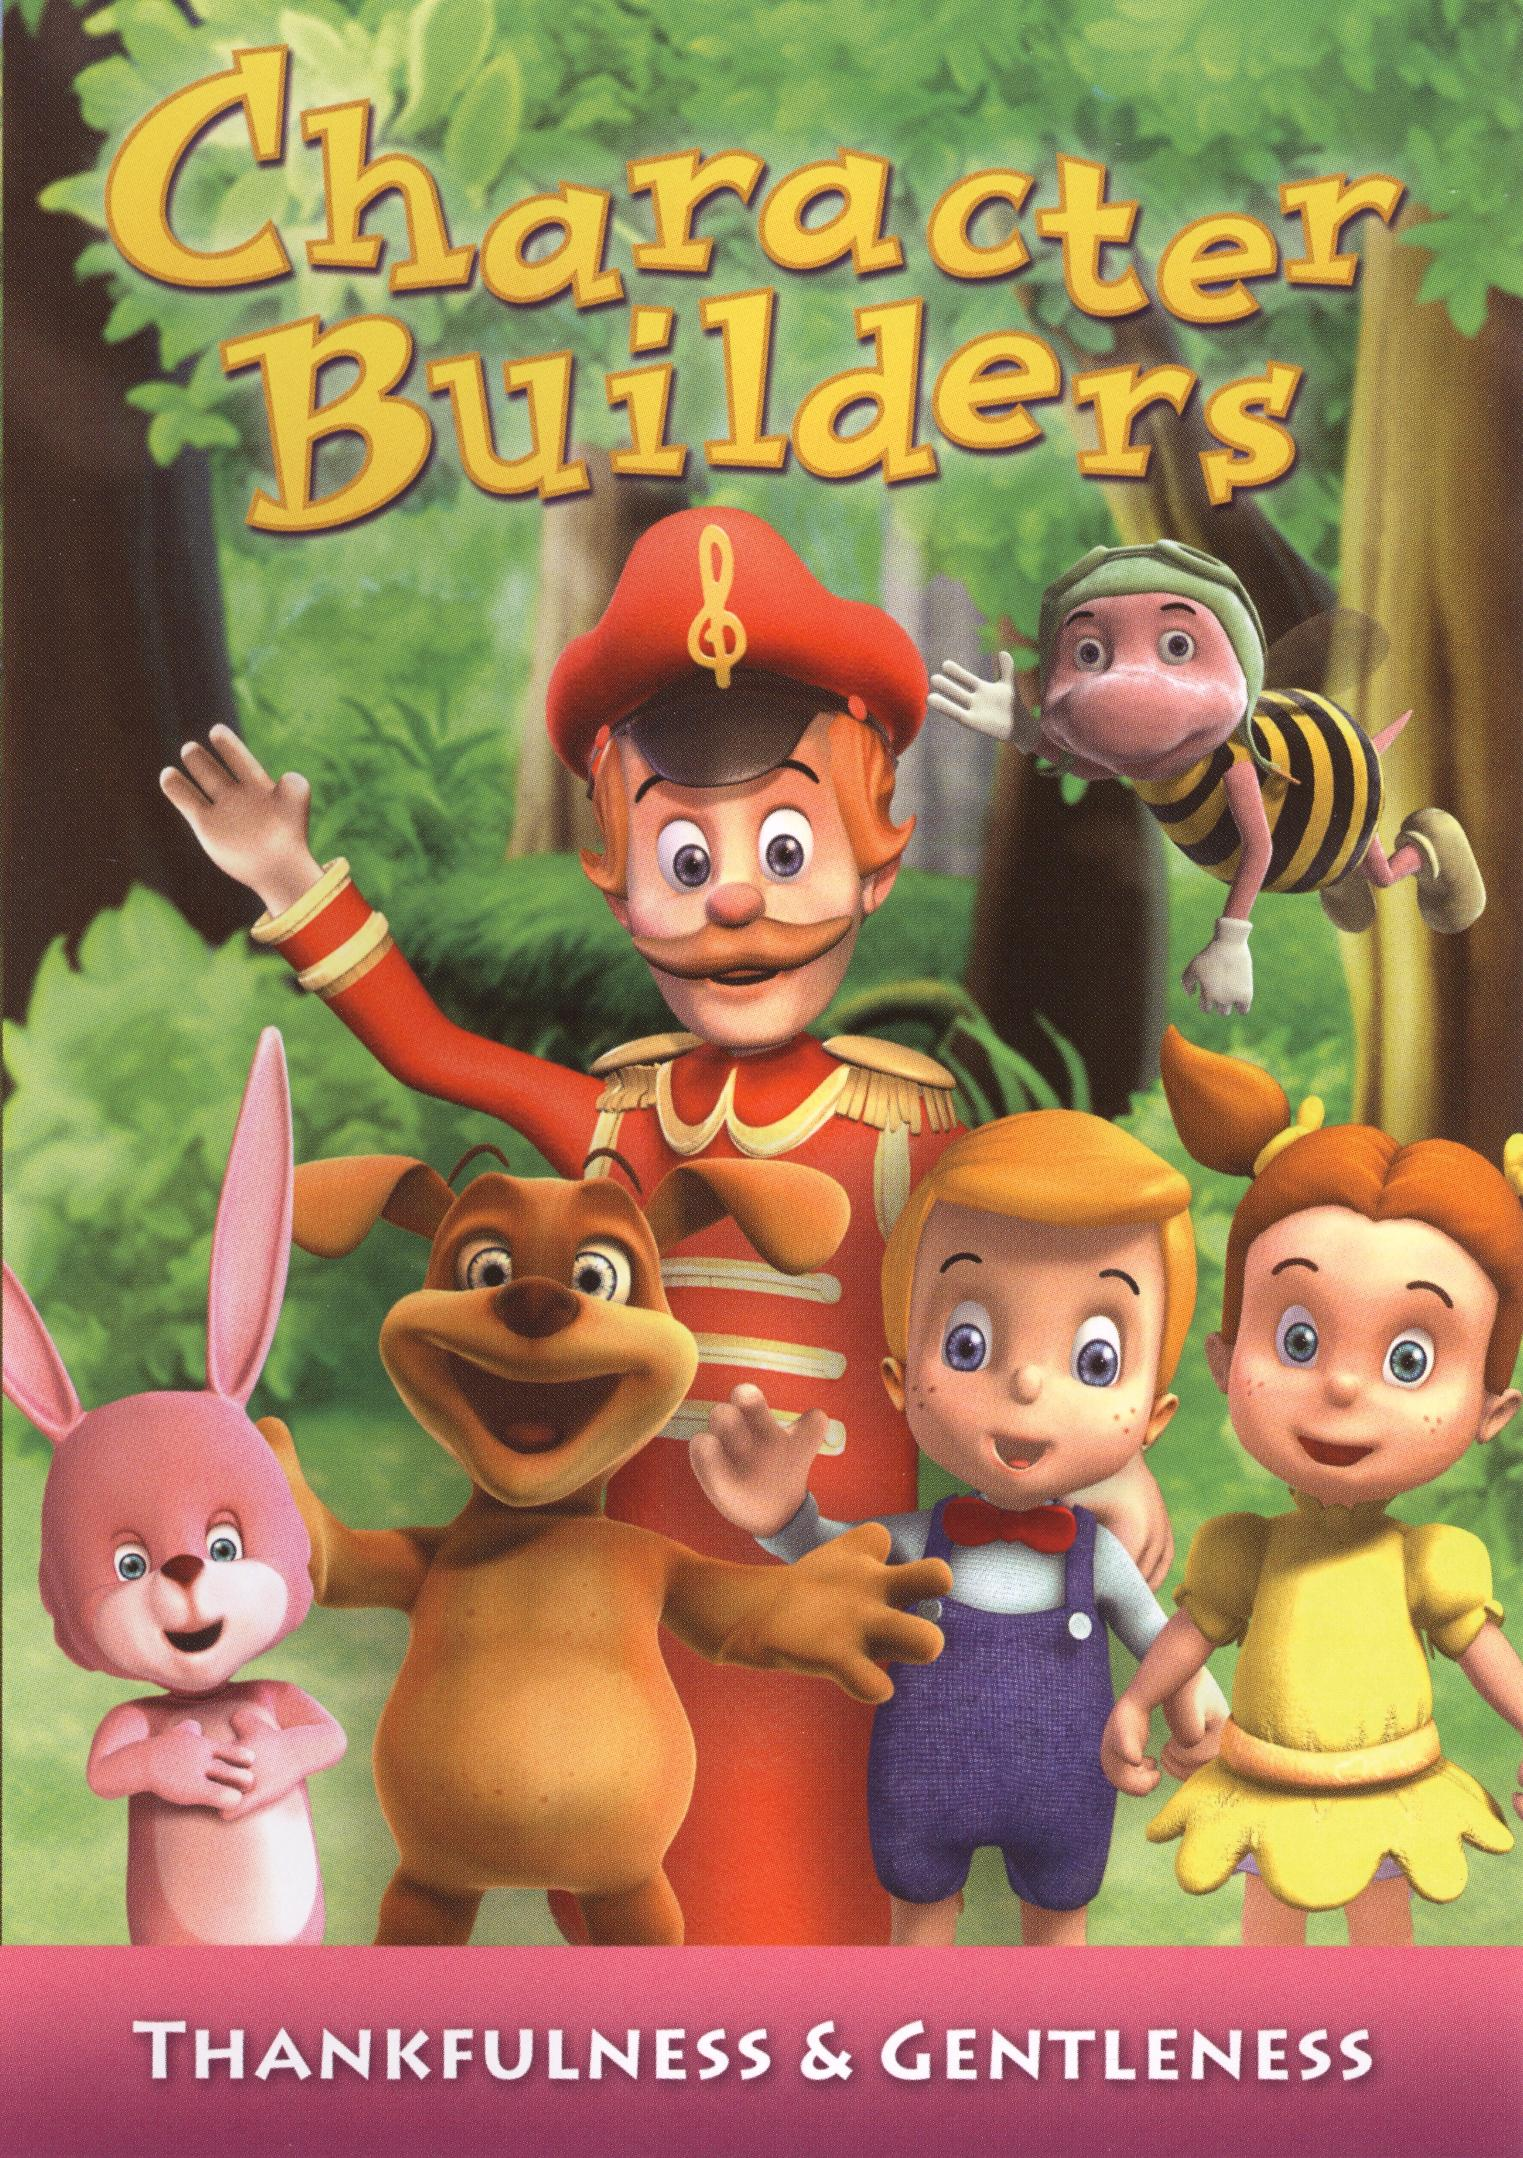 Character Builders: Learn More About Thankfulness and Gentleness (2007)